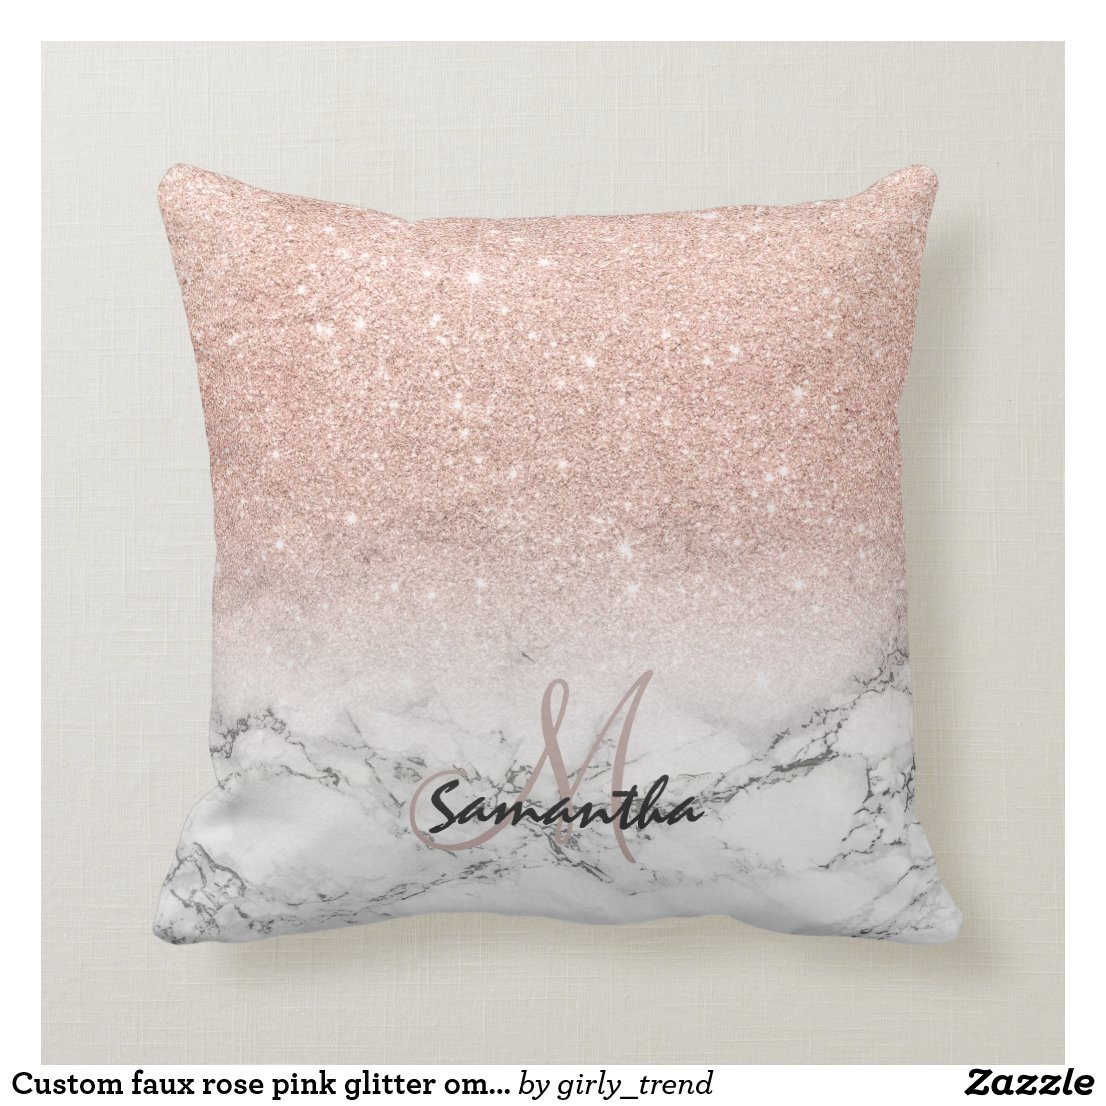 Custom faux rose pink glitter ombre white marble cushion